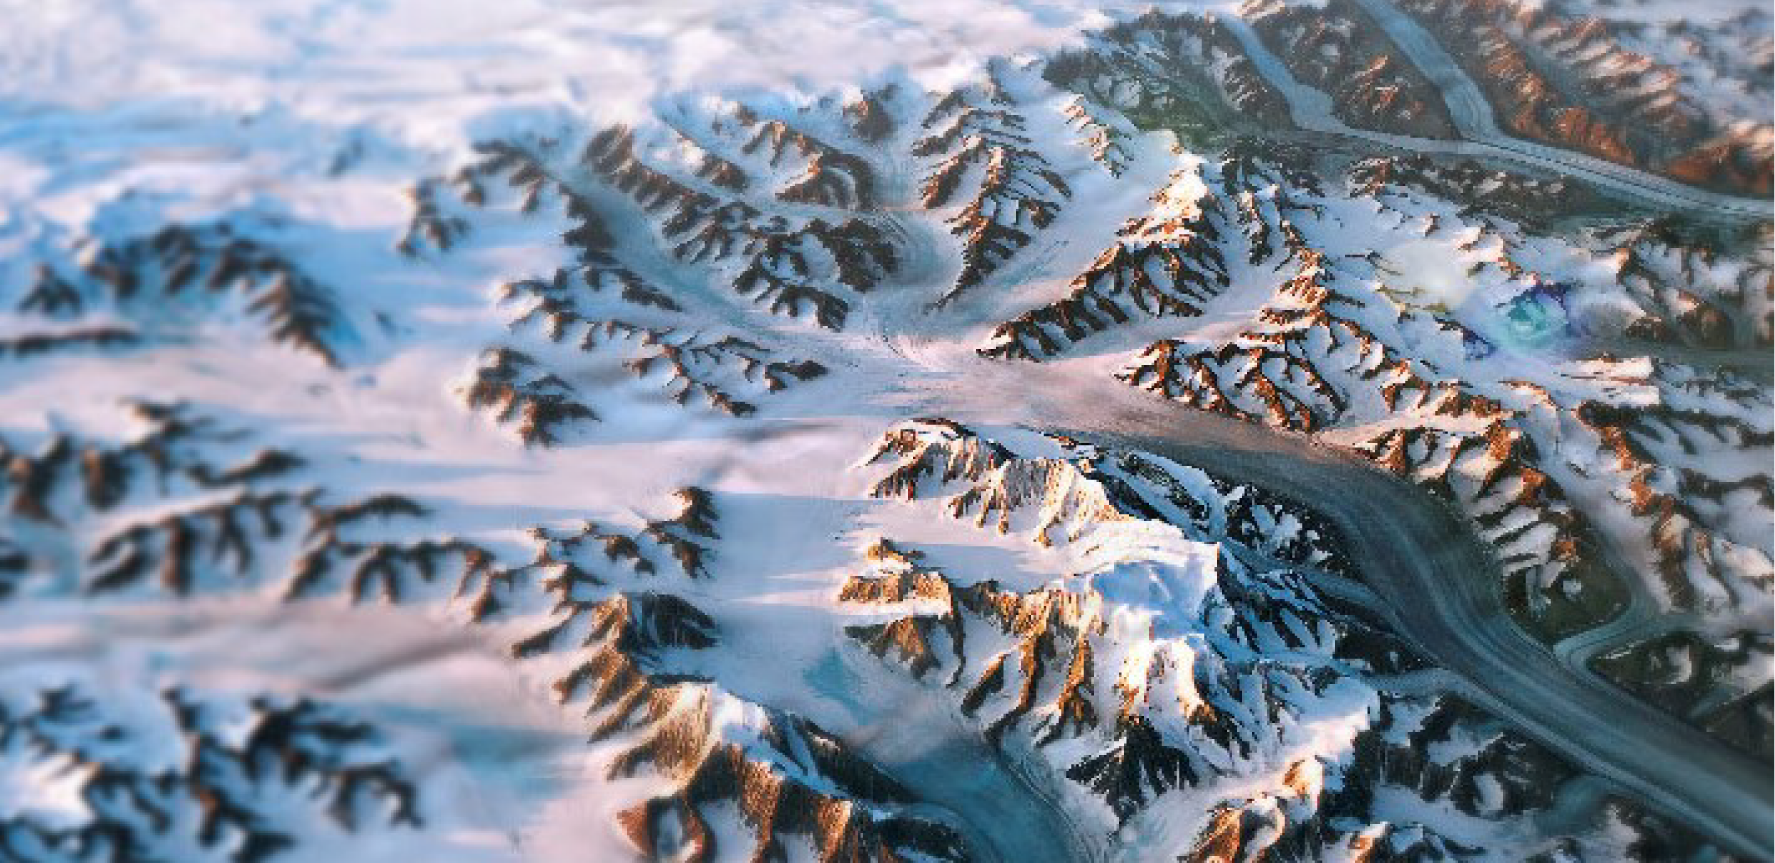 Birds eye image of Greenland glacier flowing through a snowing mountainous landscape